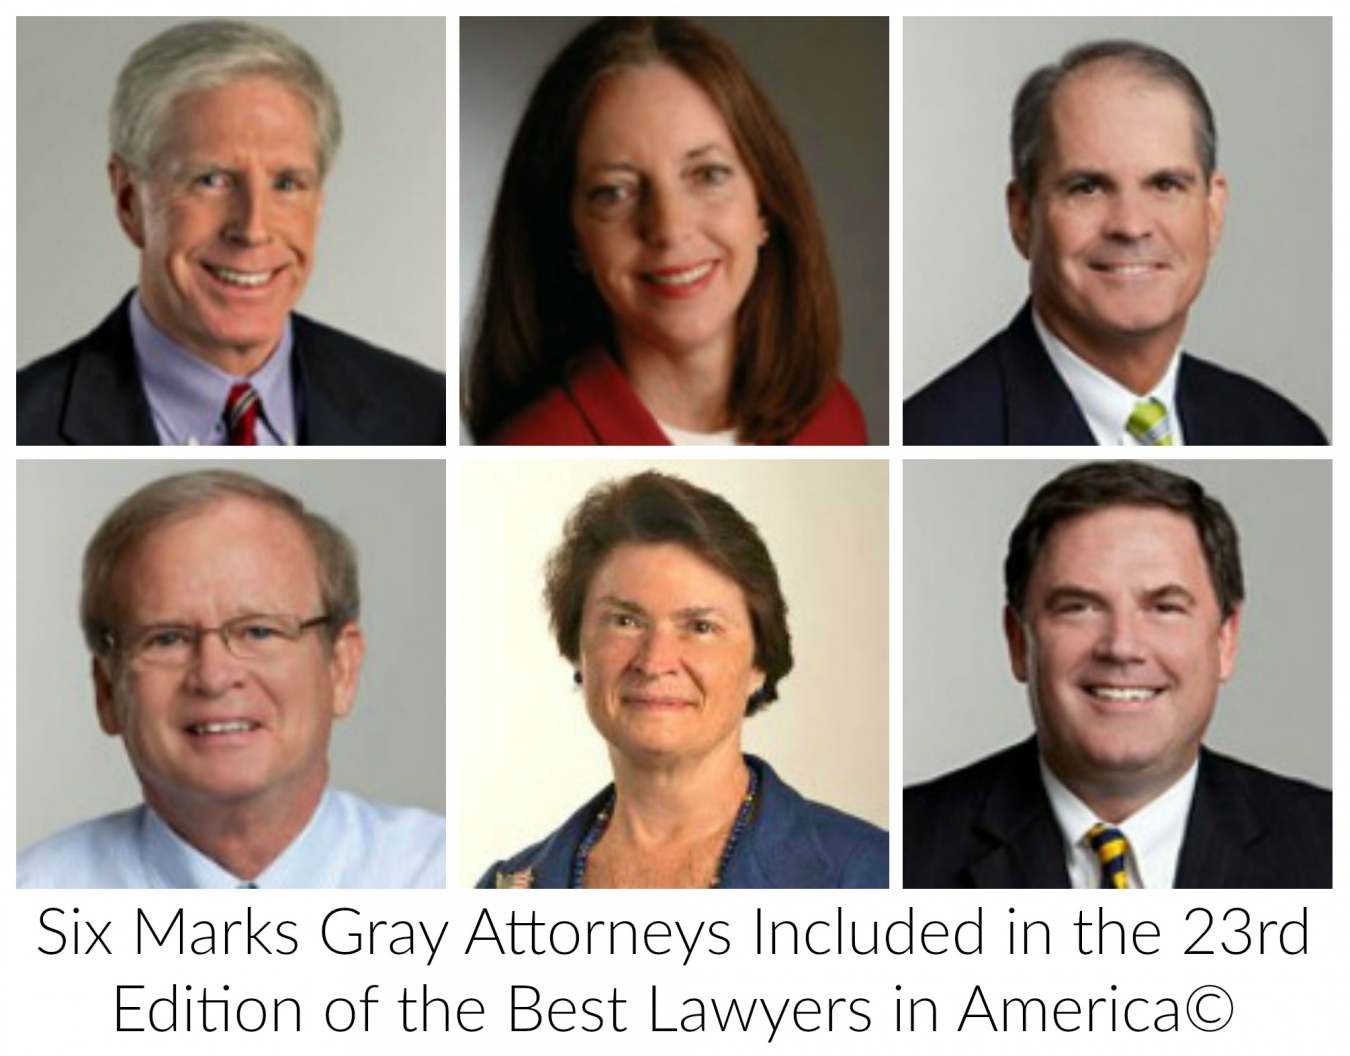 Six Marks Gray Attorneys Included In The 23rd Edition Of. Resource Management Services Inc. Net Plus Certification Porsche 356b Cabriolet. Online Colleges That Accept Gi Bill. Euthanasia Technician Certification. Car Signals On Dashboard Data Mining Workshop. Assisted Living Fort Wayne Indiana. Capitol Rehab Charles Town Wv. Cheap Holiday Cards With Photo